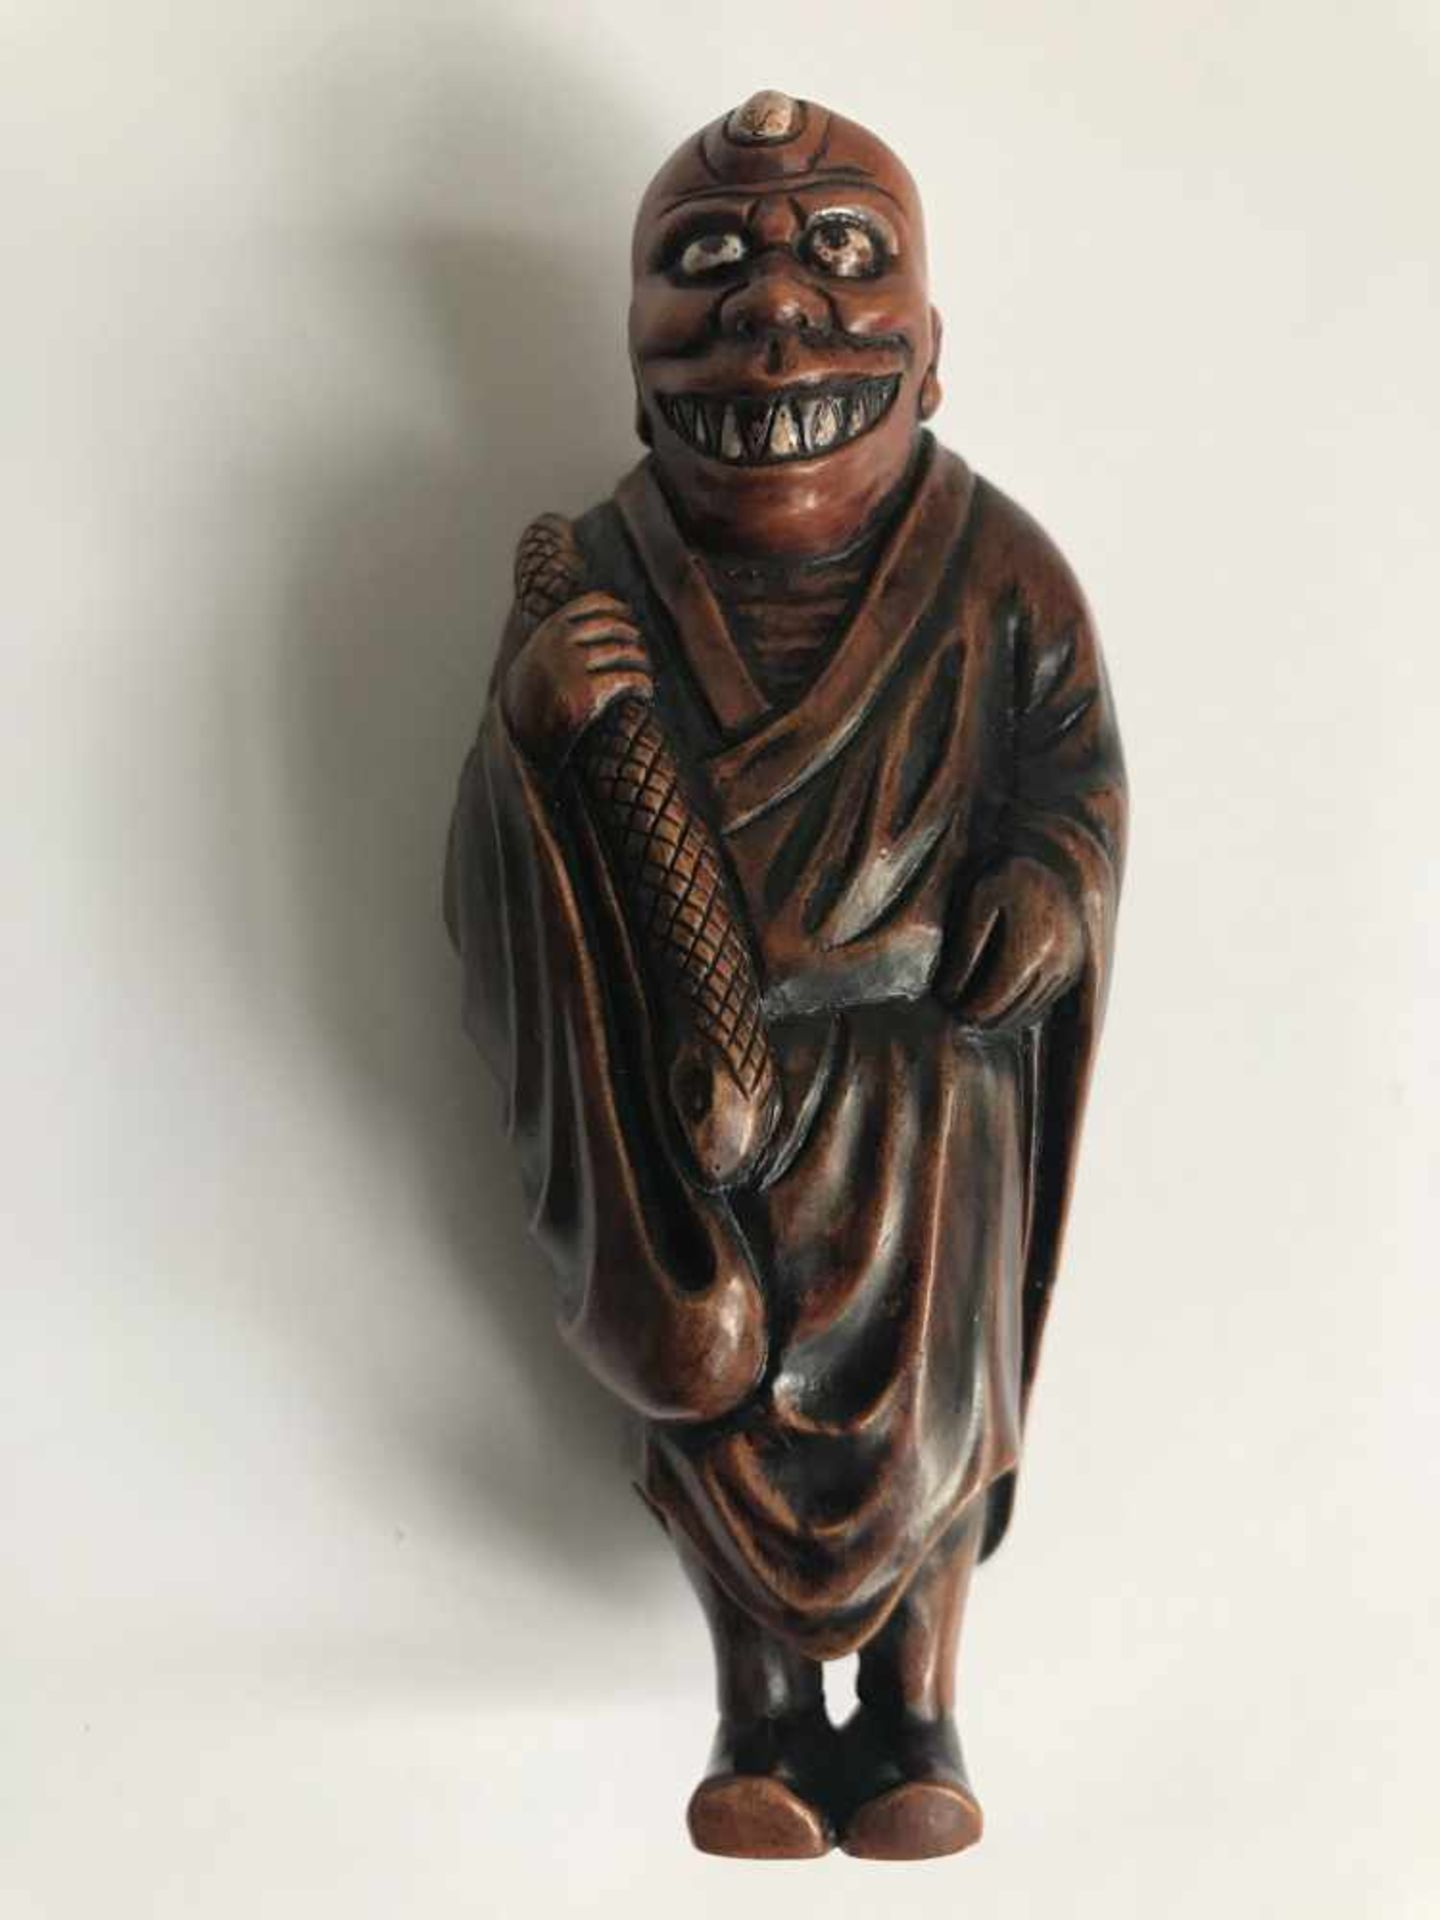 Los 478 - Boxwood netsuke Oni an Oni Japan MEIJI period H 9,4 cm signed private collection